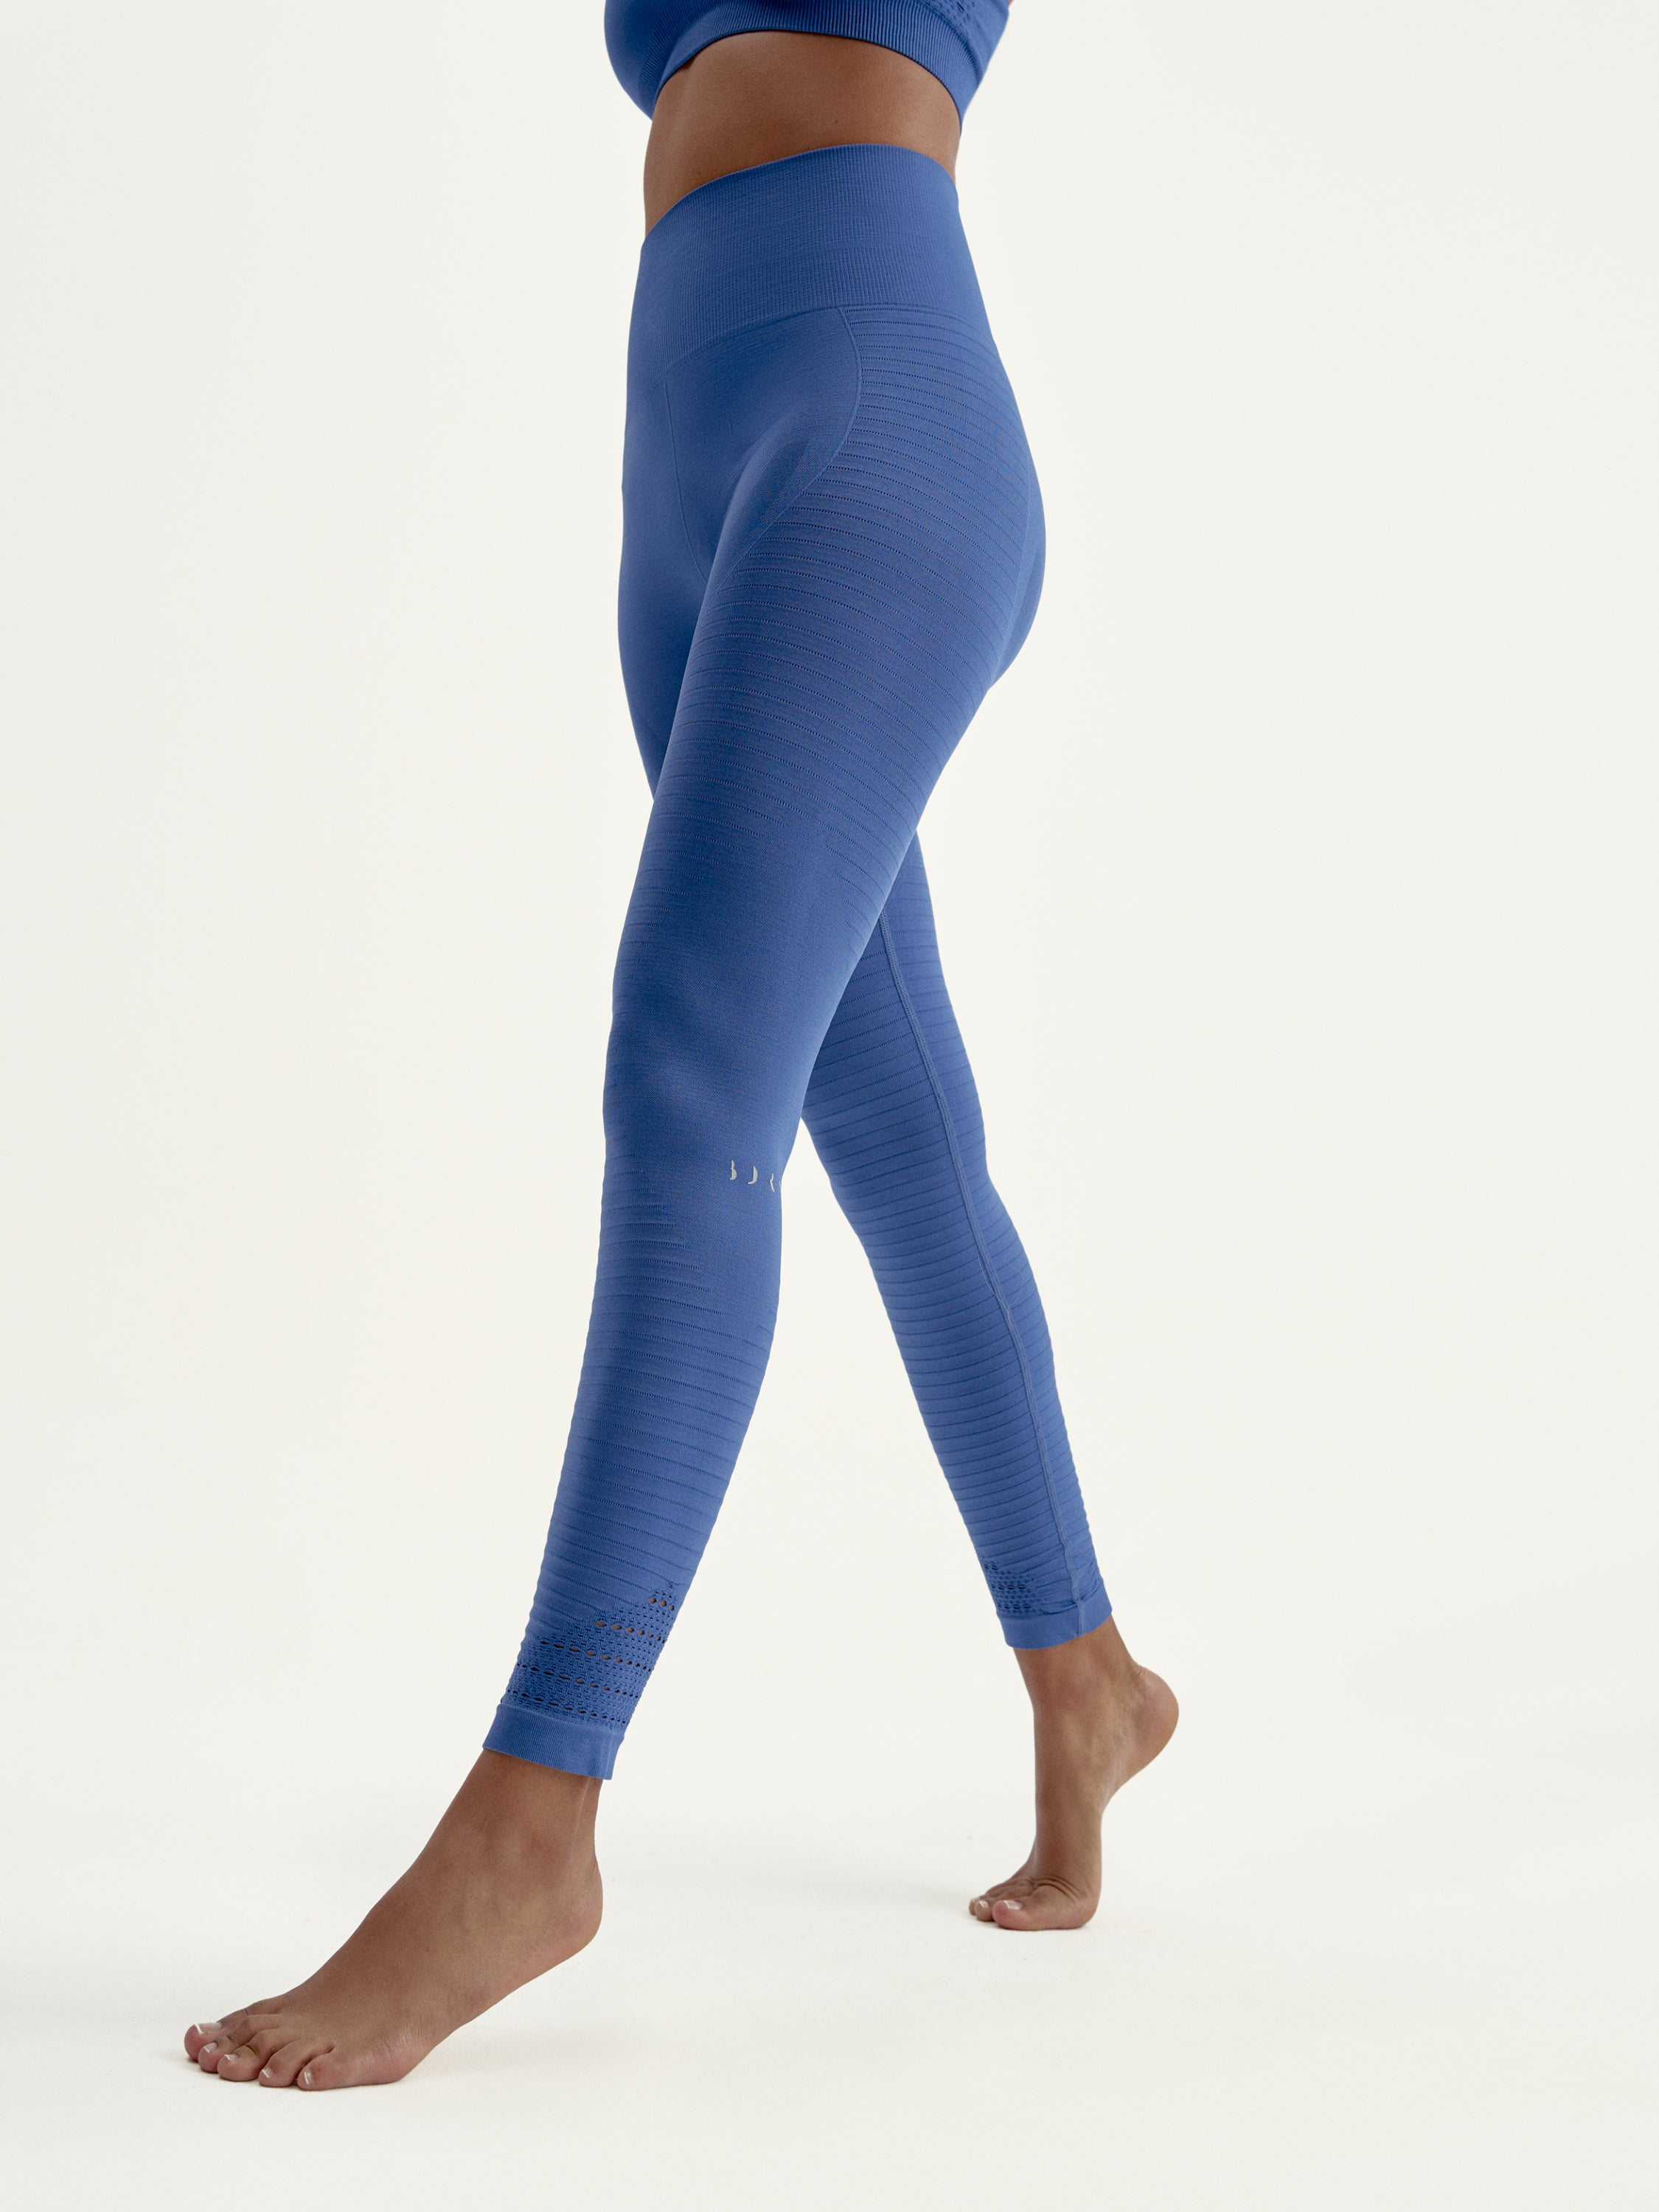 Legging Hatha Navy